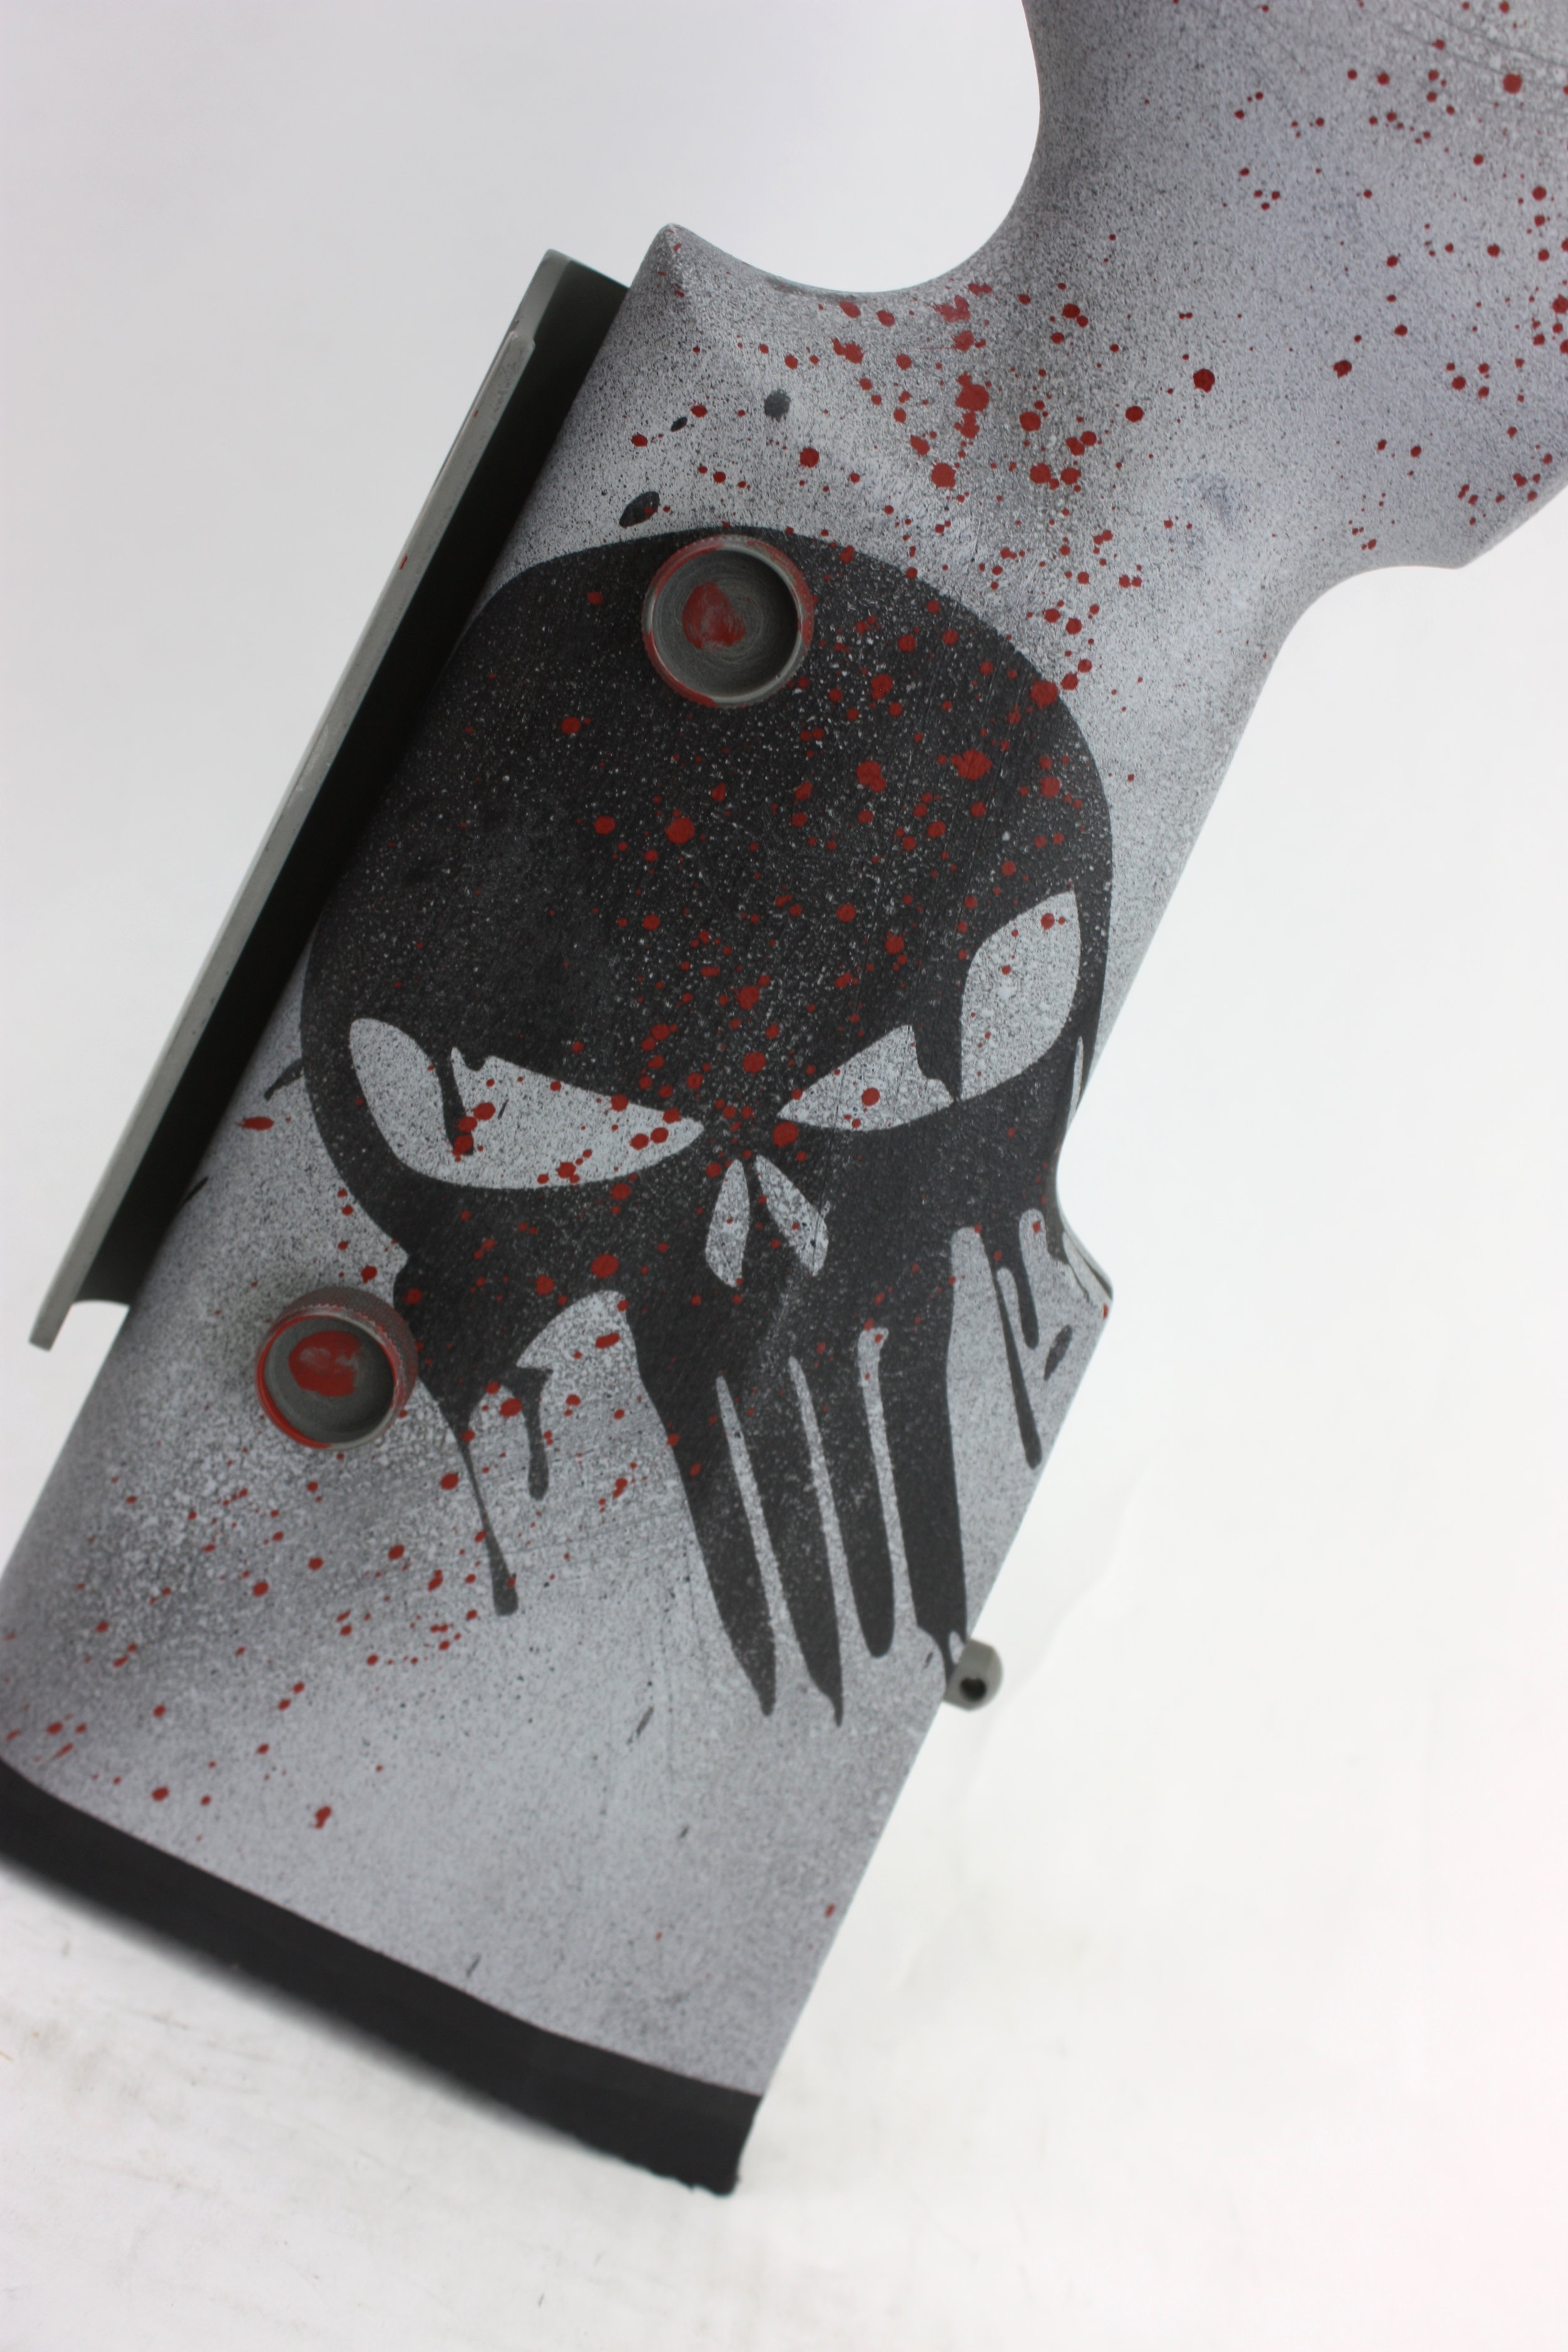 A necessary item on a Punisher Themed rifle is obviously a Punisher Skull.